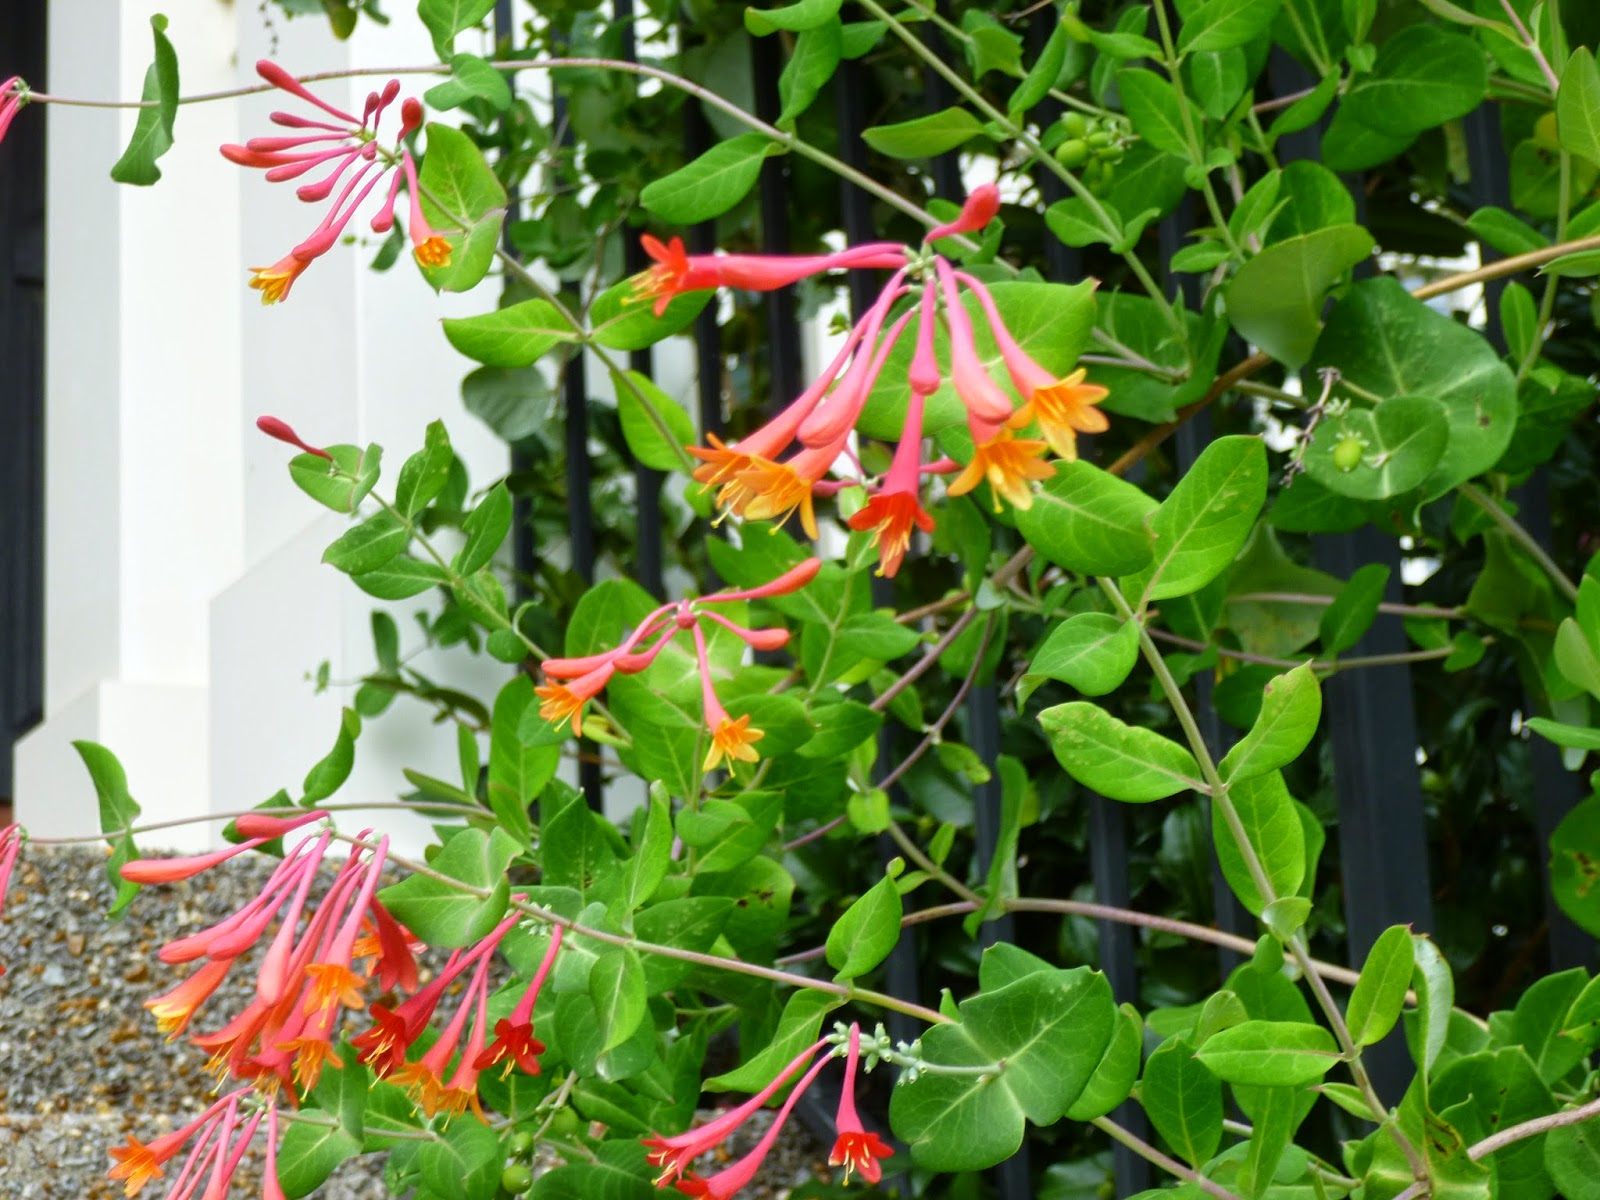 One More View Of The Coral Honeysuckle Flowers I Tried To Duck Down And Get  A